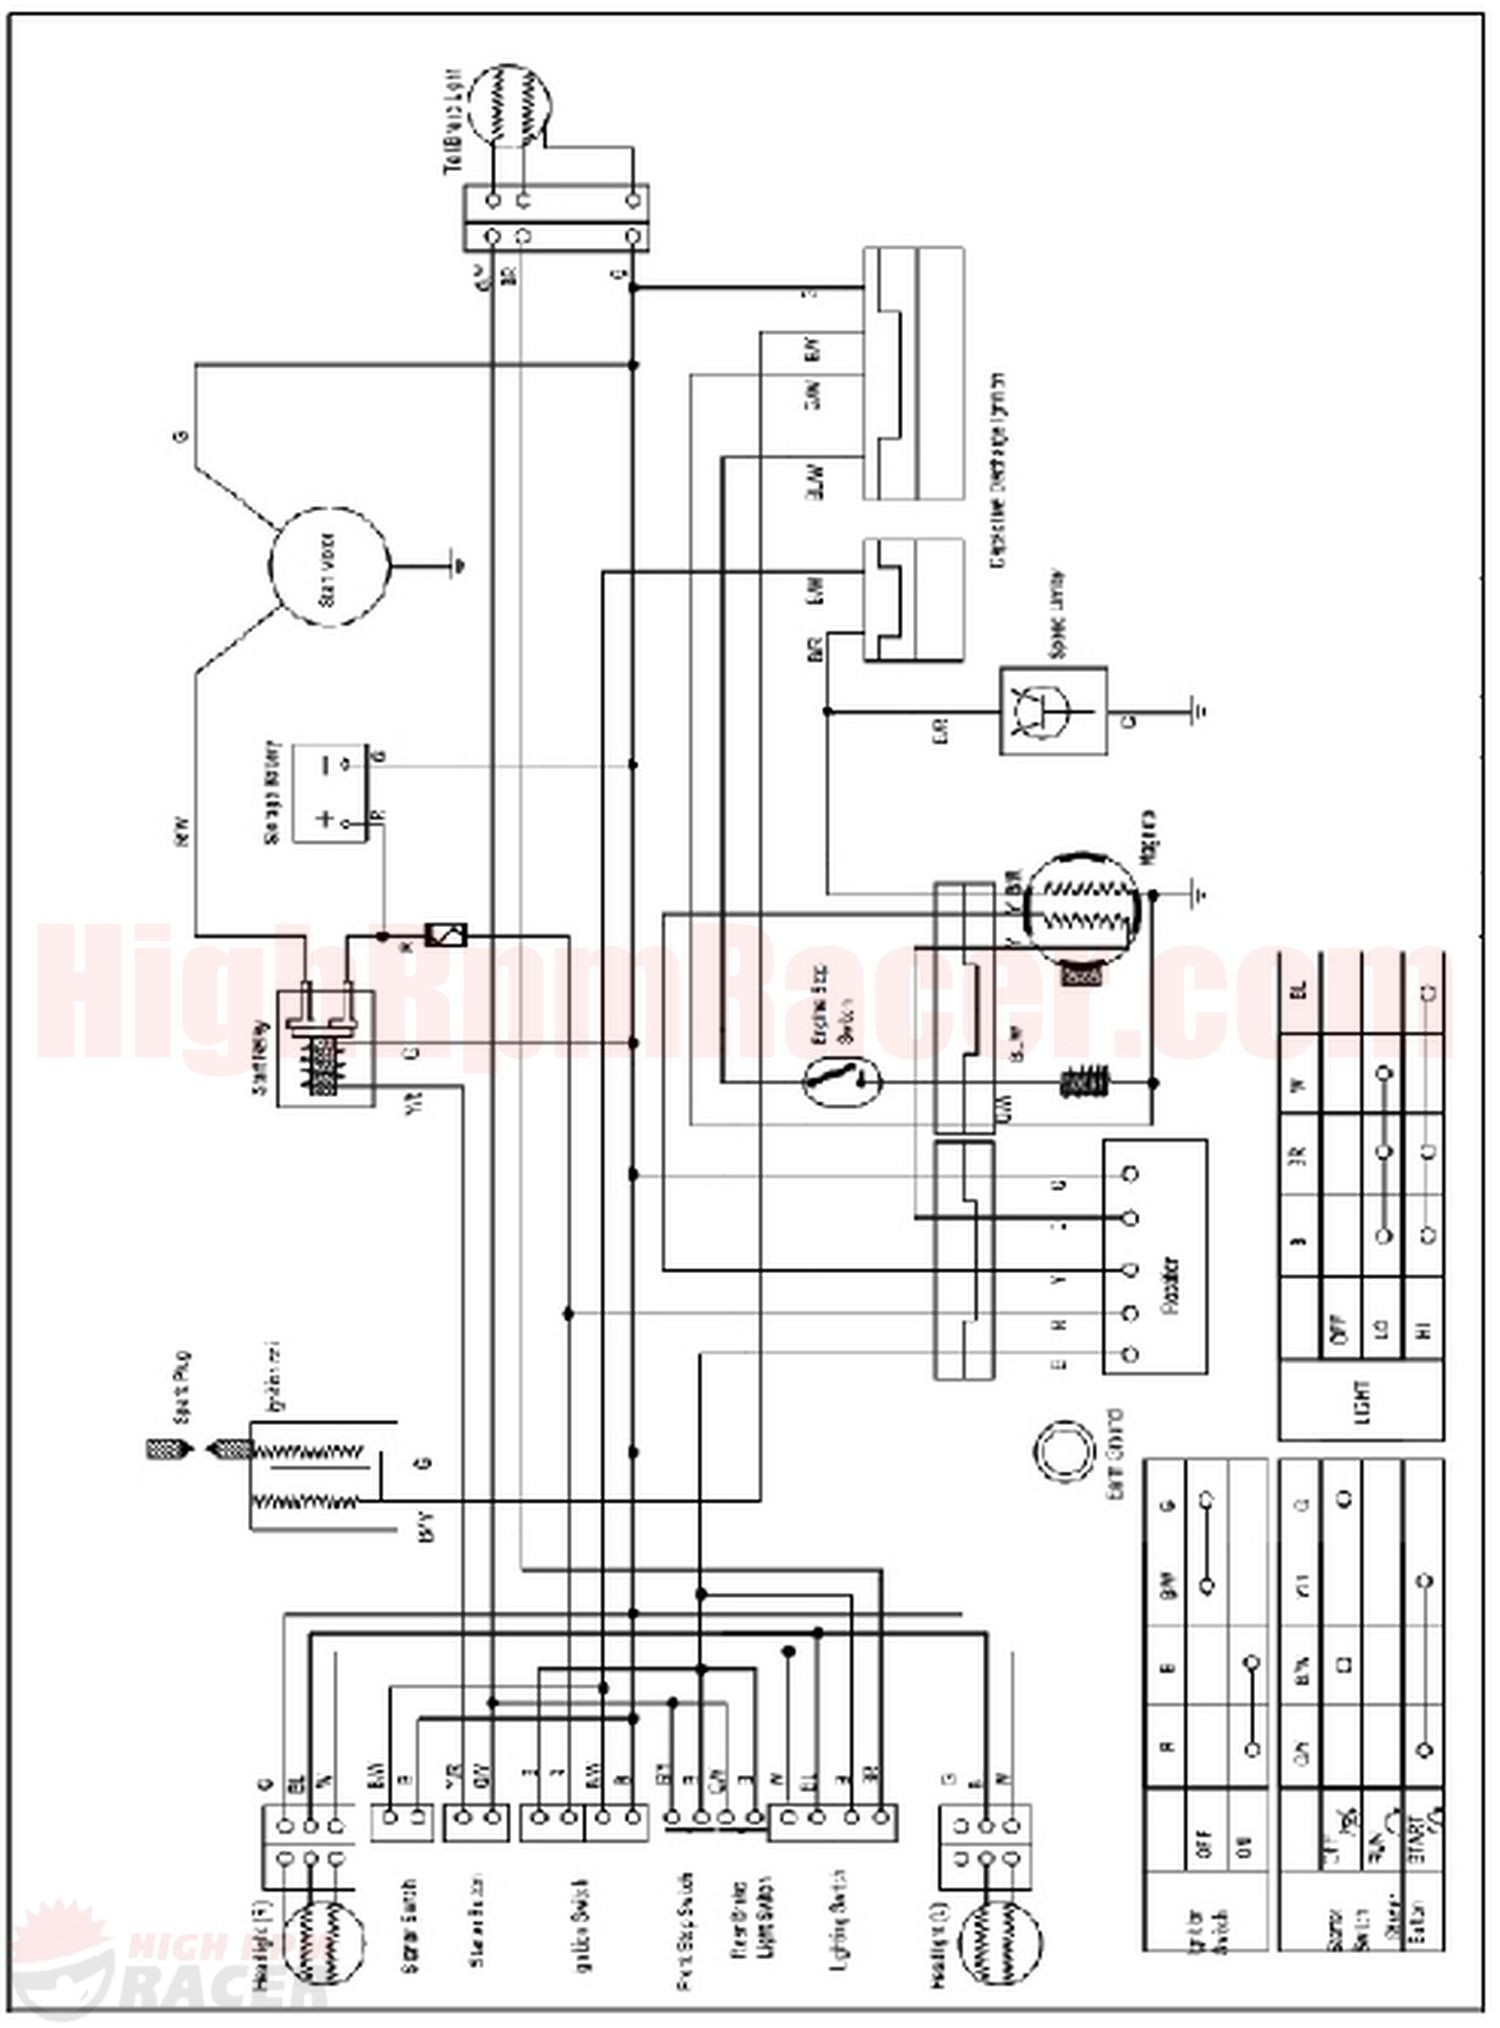 Baja Motorsports Wiring Diagram | Wiring Liry on